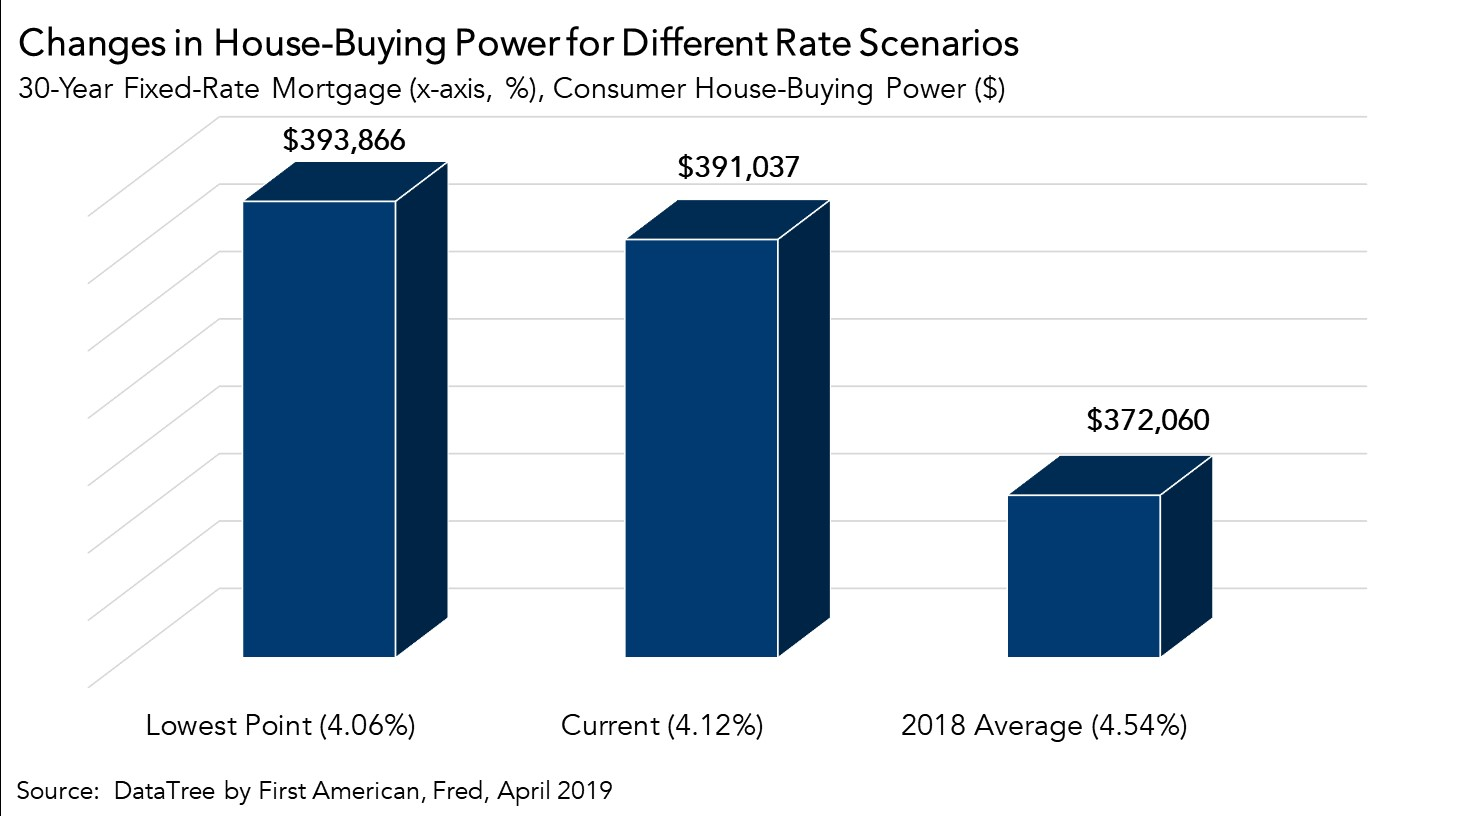 Changes In House-Buying Power chart April 2019